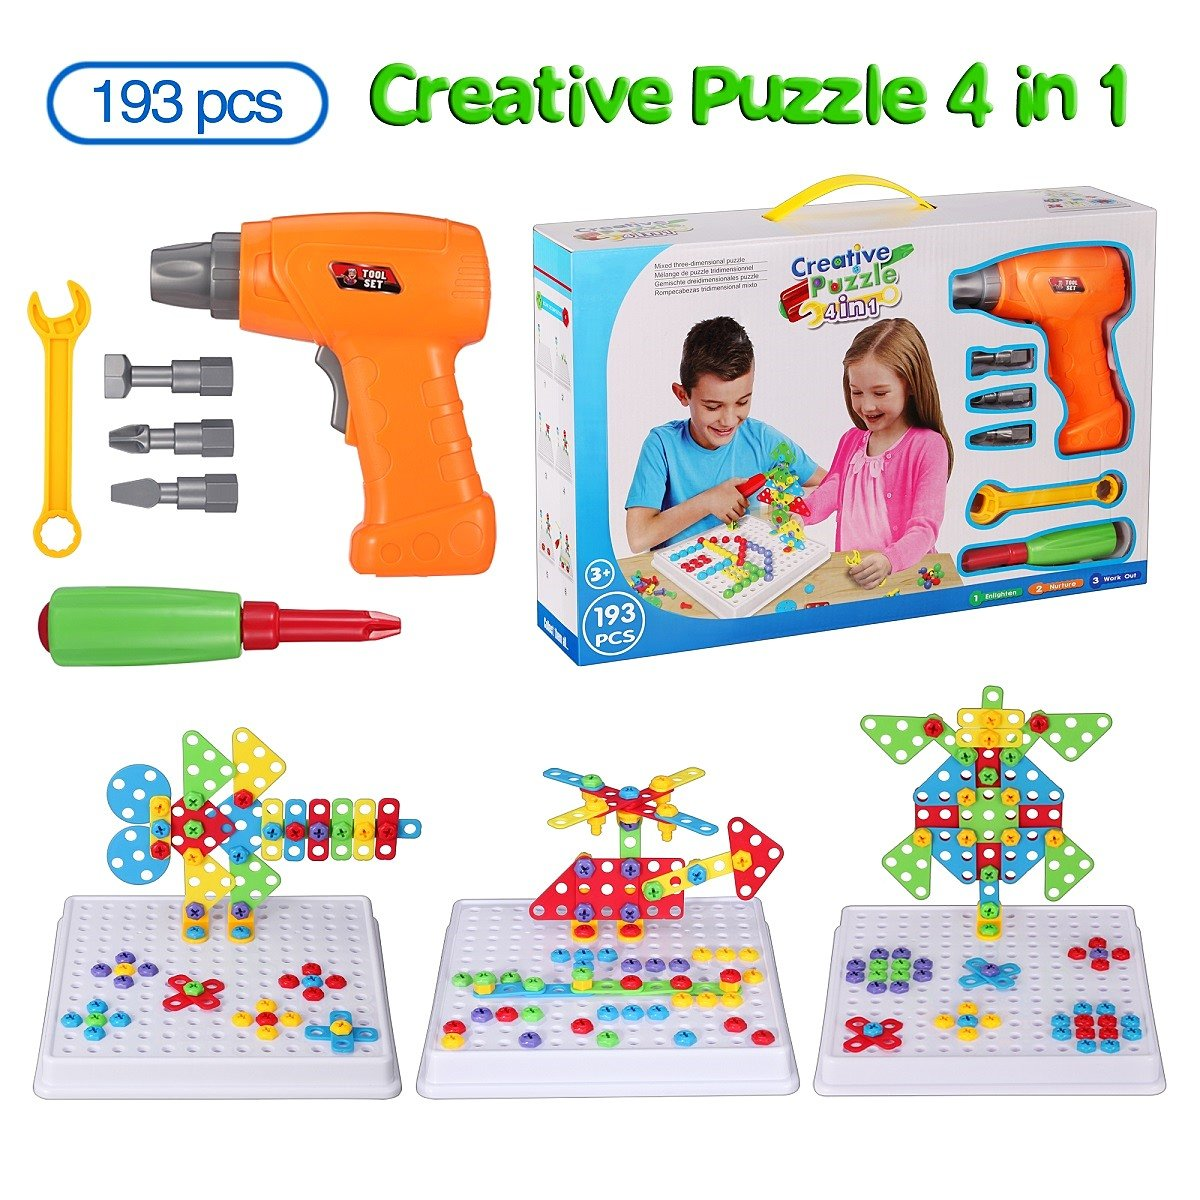 Haifeng Educational Toy Drill STEM Learning Create Design Kit Original 193 Piece Construction Engineering Building Blocks for 3, 4 and 5+ Year Old Boys & Girls Best Toy Gift Creative Fun Kit